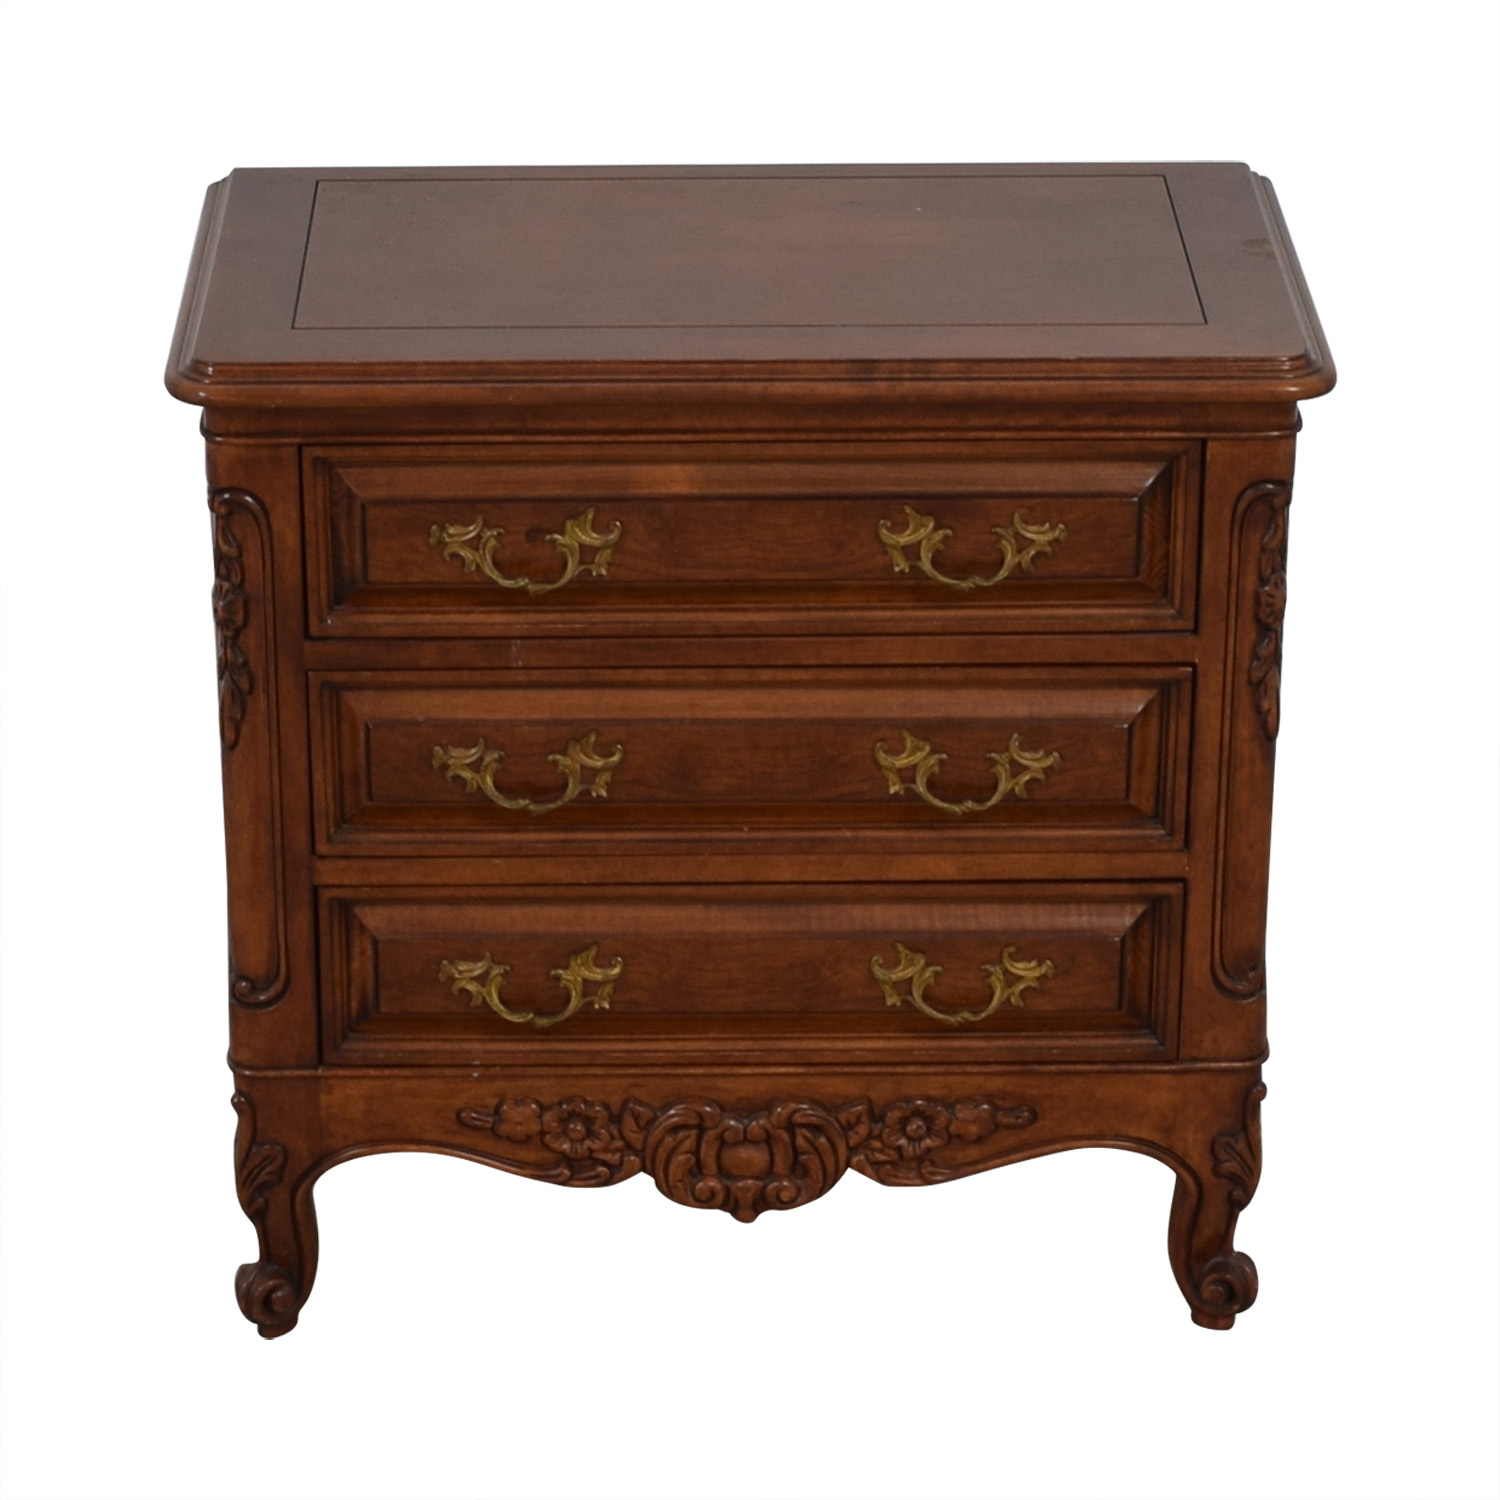 Bau Furniture Bau Furniture Antique Wood Carved Three-Drawer Nightstand